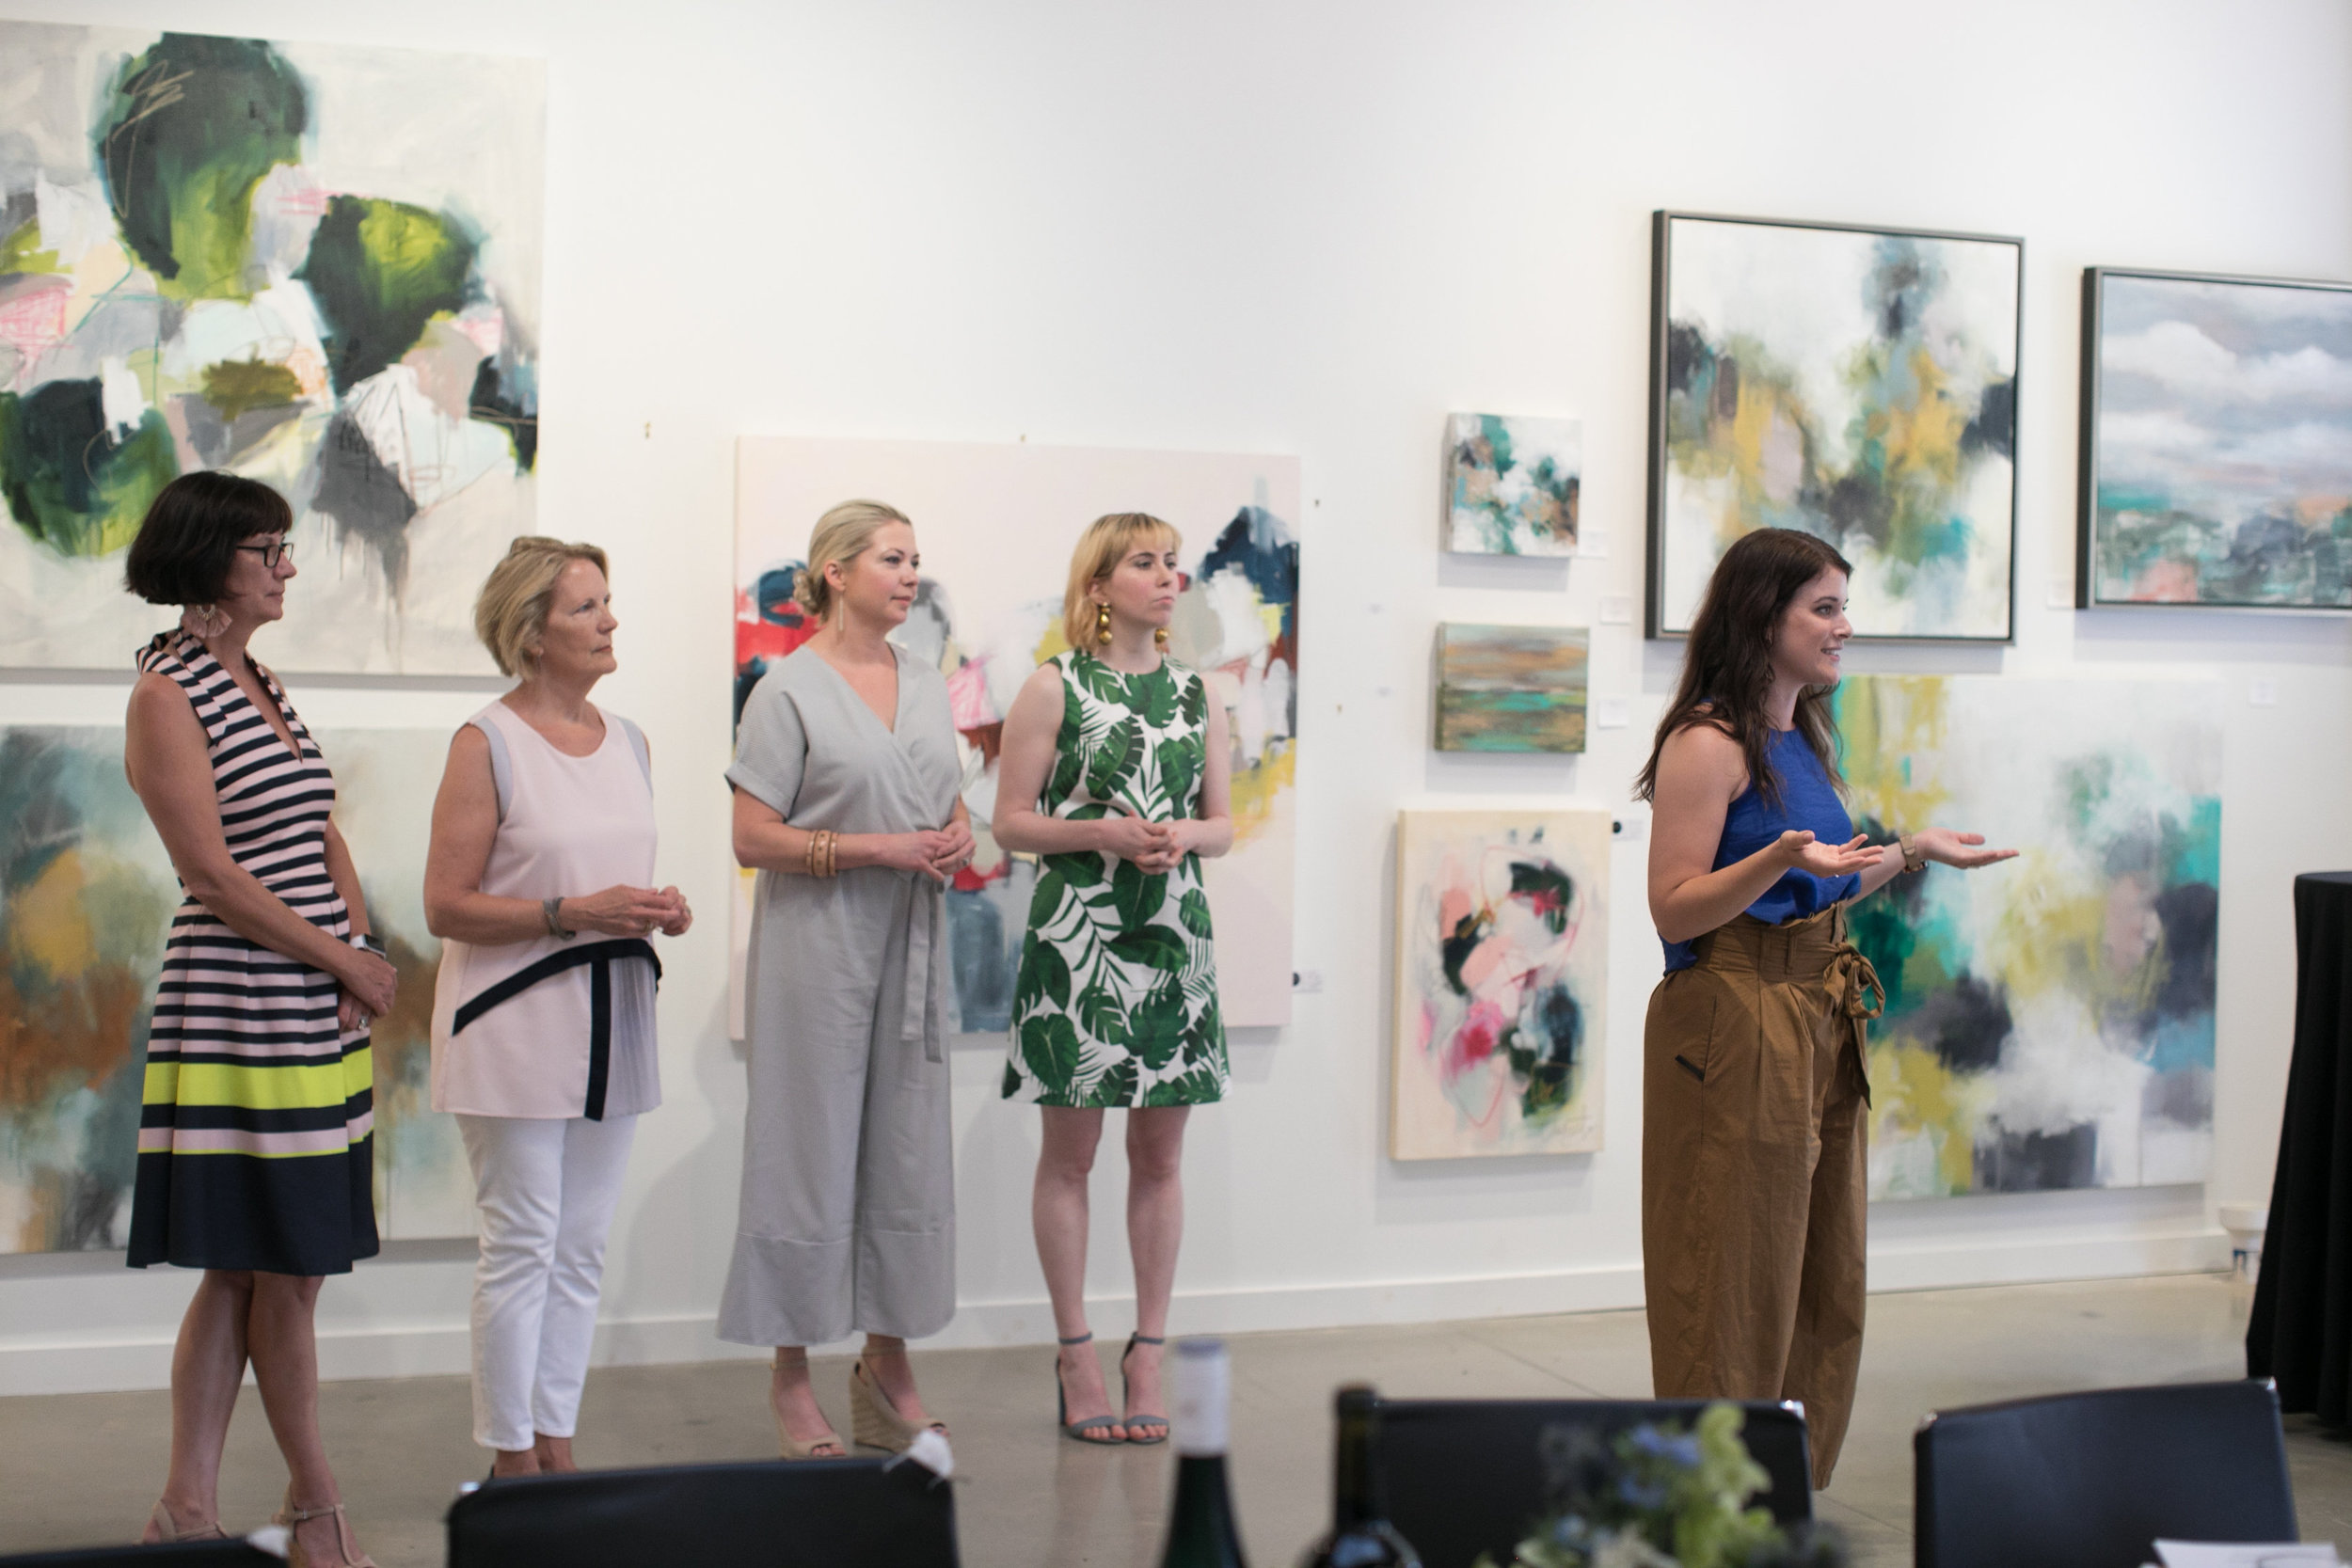 Art Farm Director Megan Schaeffer introduces artists Lulie Wallace and Raven Roxanne to Art Over Dinner guests at Grange Hall.